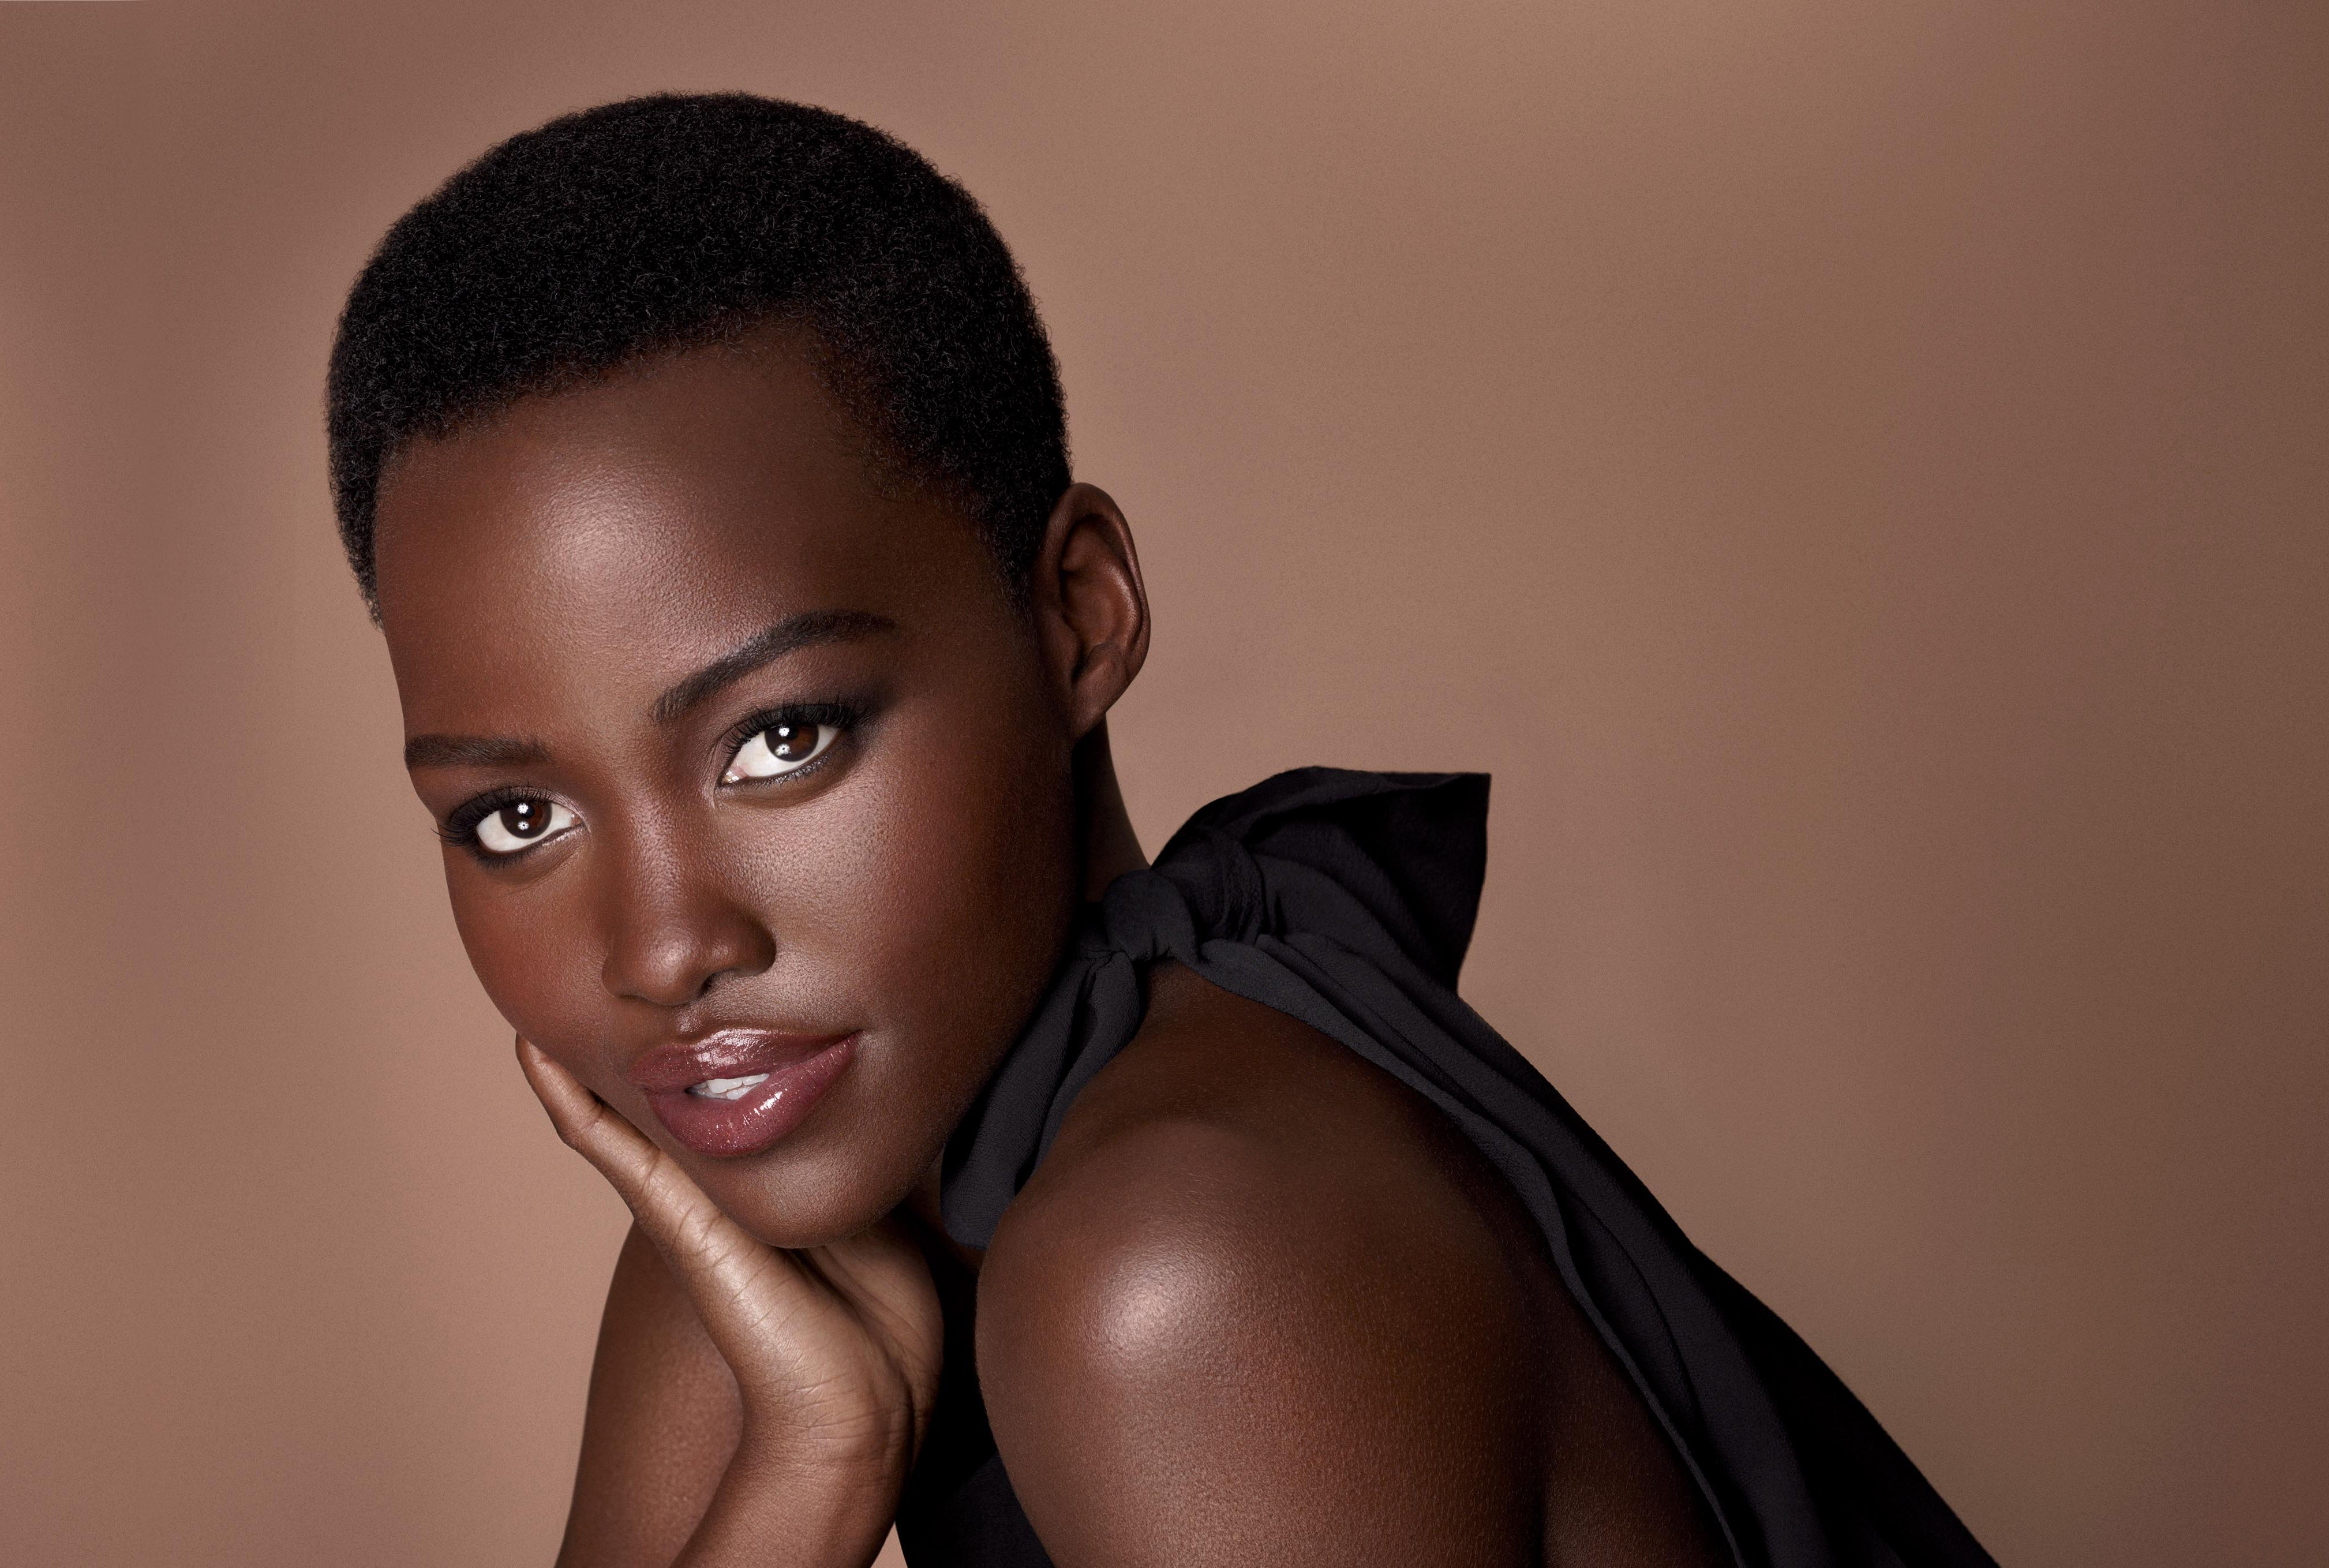 50 Stylish Short Hairstyles For Black Women With Short Haircuts For Black Women With Oval Faces (View 24 of 25)